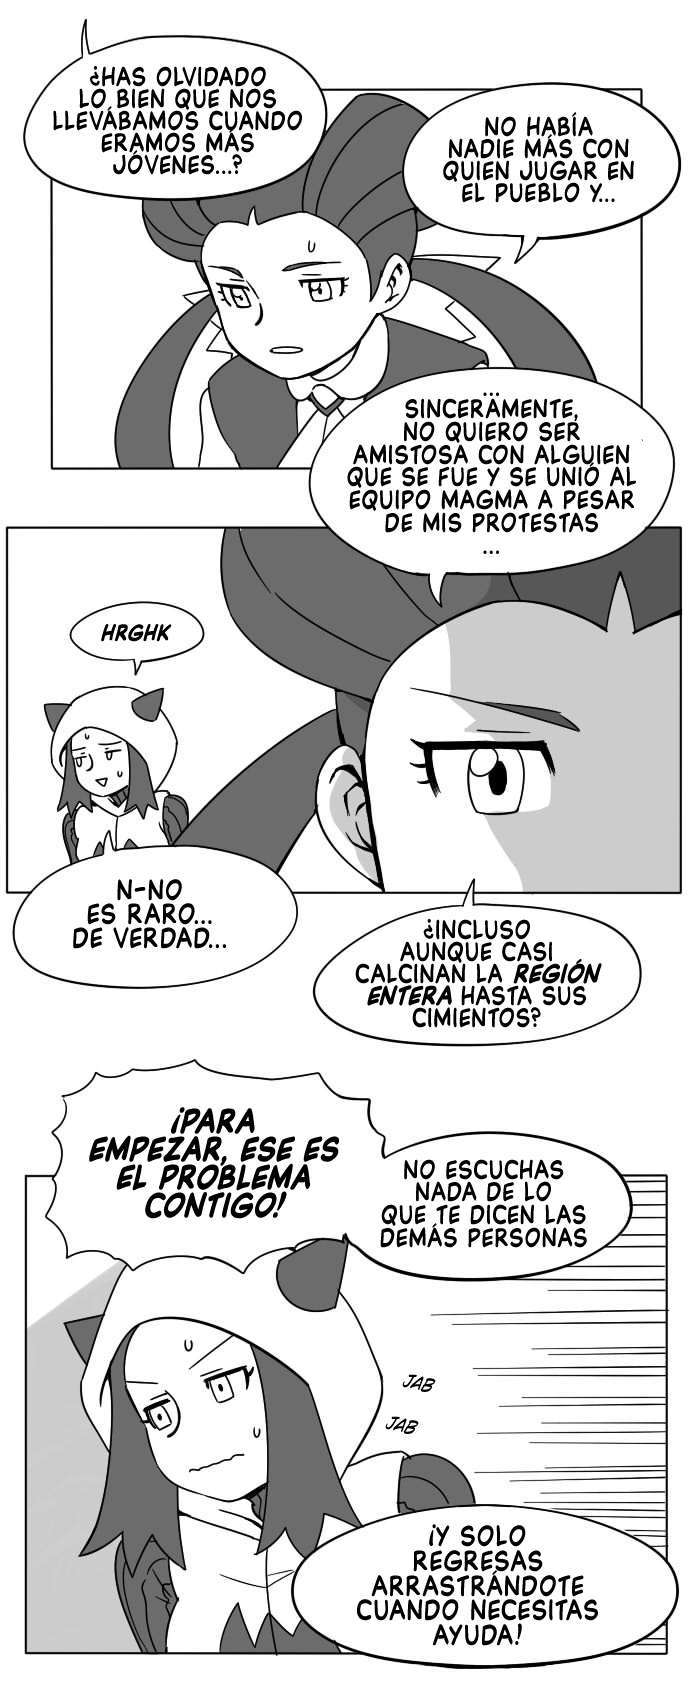 dating a magma grunt 8 About dating a team magma gruntsource at: pokã©mon - dating a team magma grunt (doujinshi) ch85: april fools may 9, 2015 pokã©mon - dating.